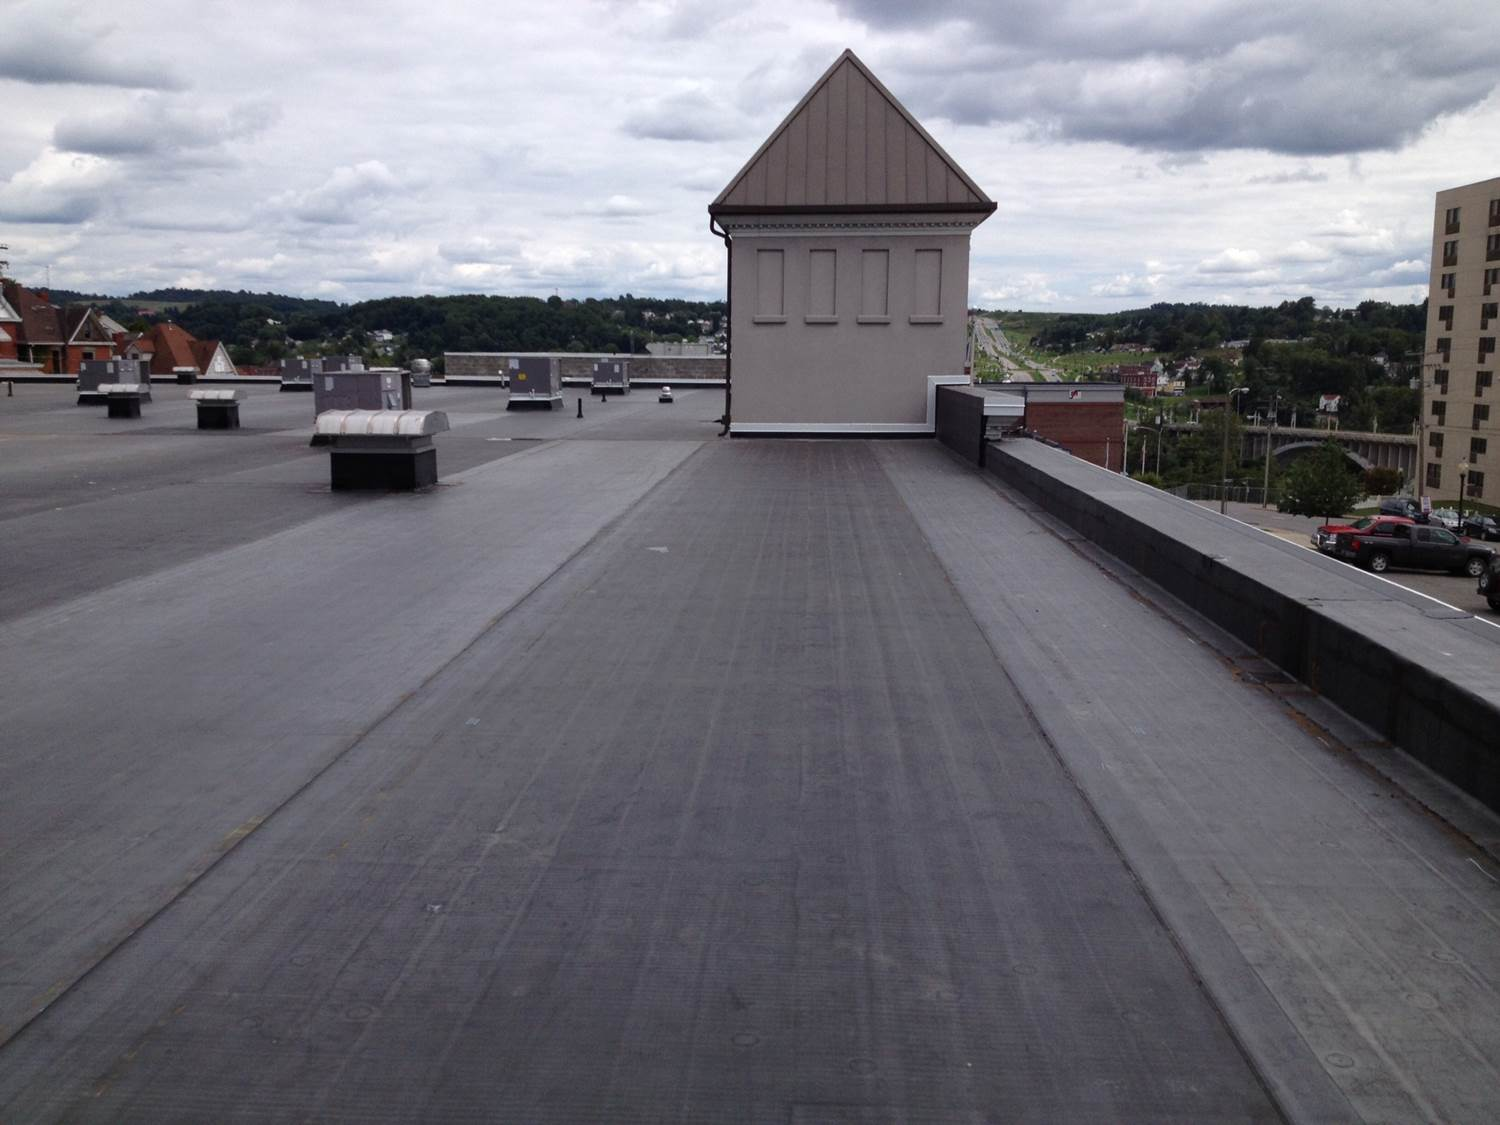 EPDM Roofing | Fully Adhered EPDM Roofing | Washington, PA